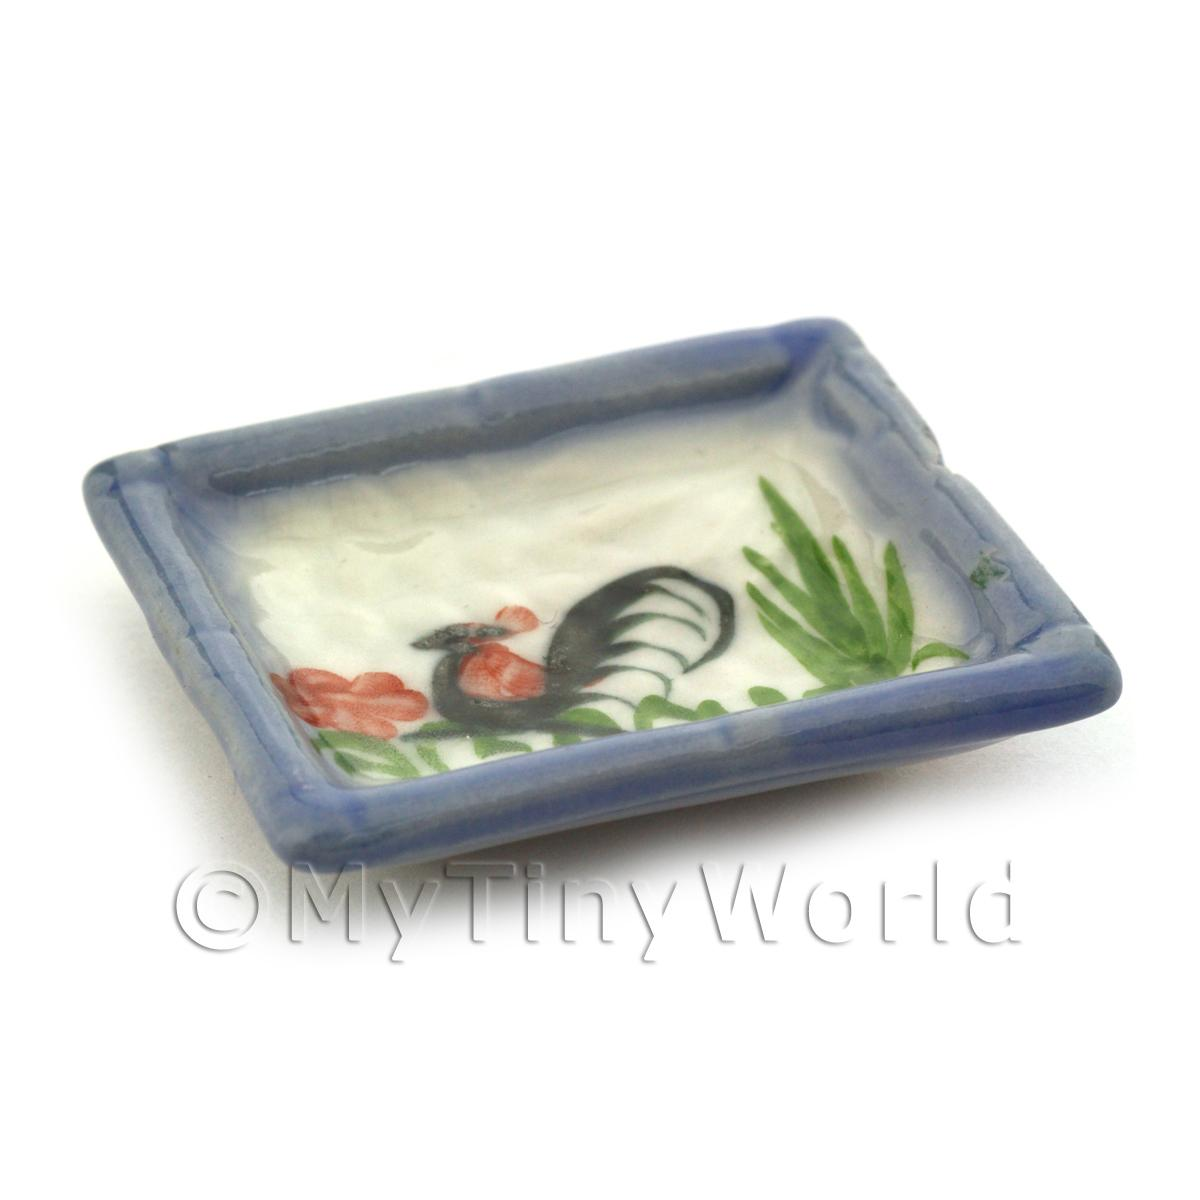 Dolls House Miniature 34mm x 40mm White Ceramic Cockerel Plate With Blue Edge